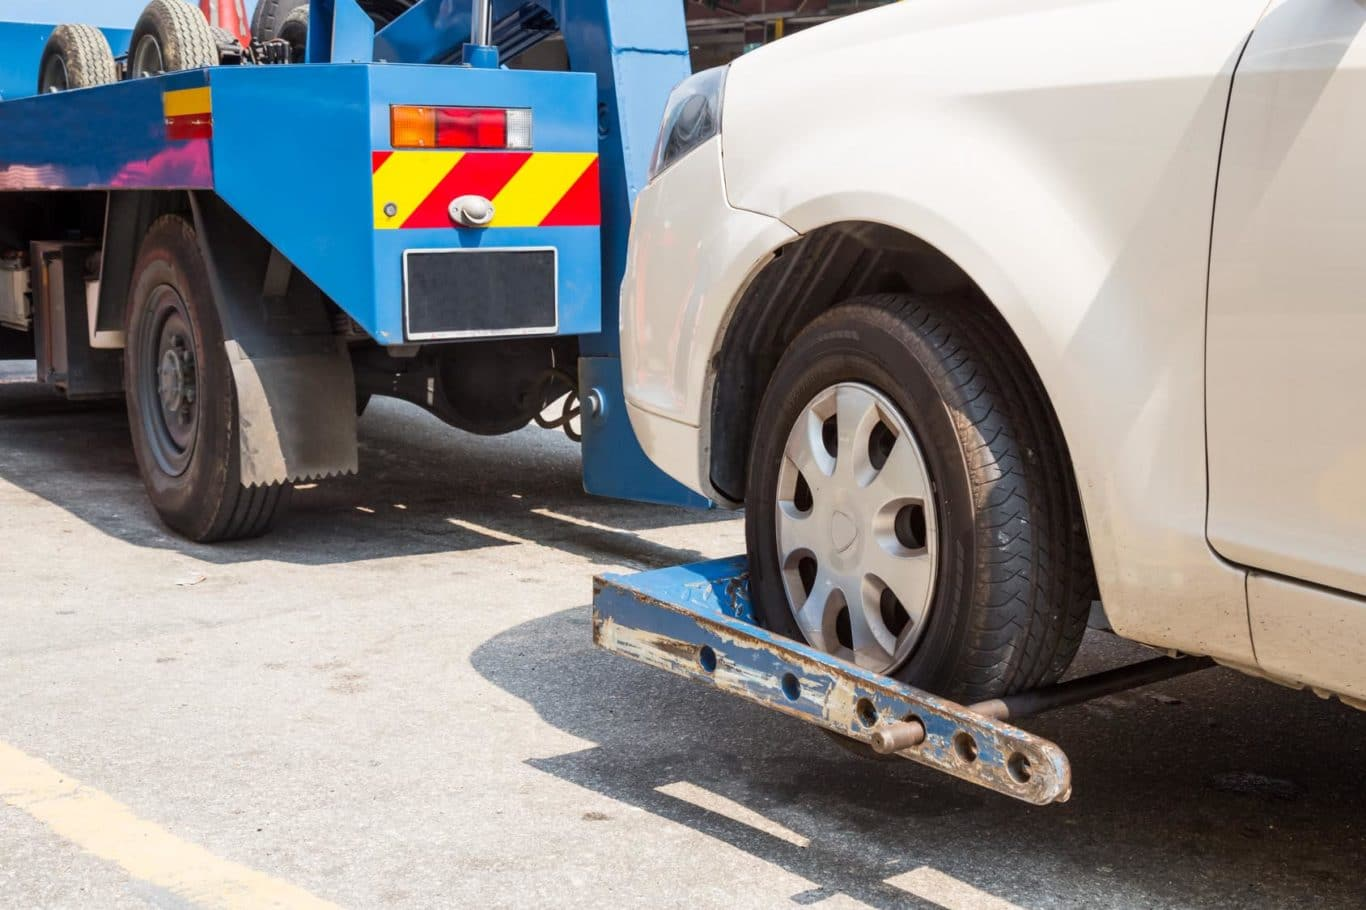 Glendalough expert Breakdown Recovery services